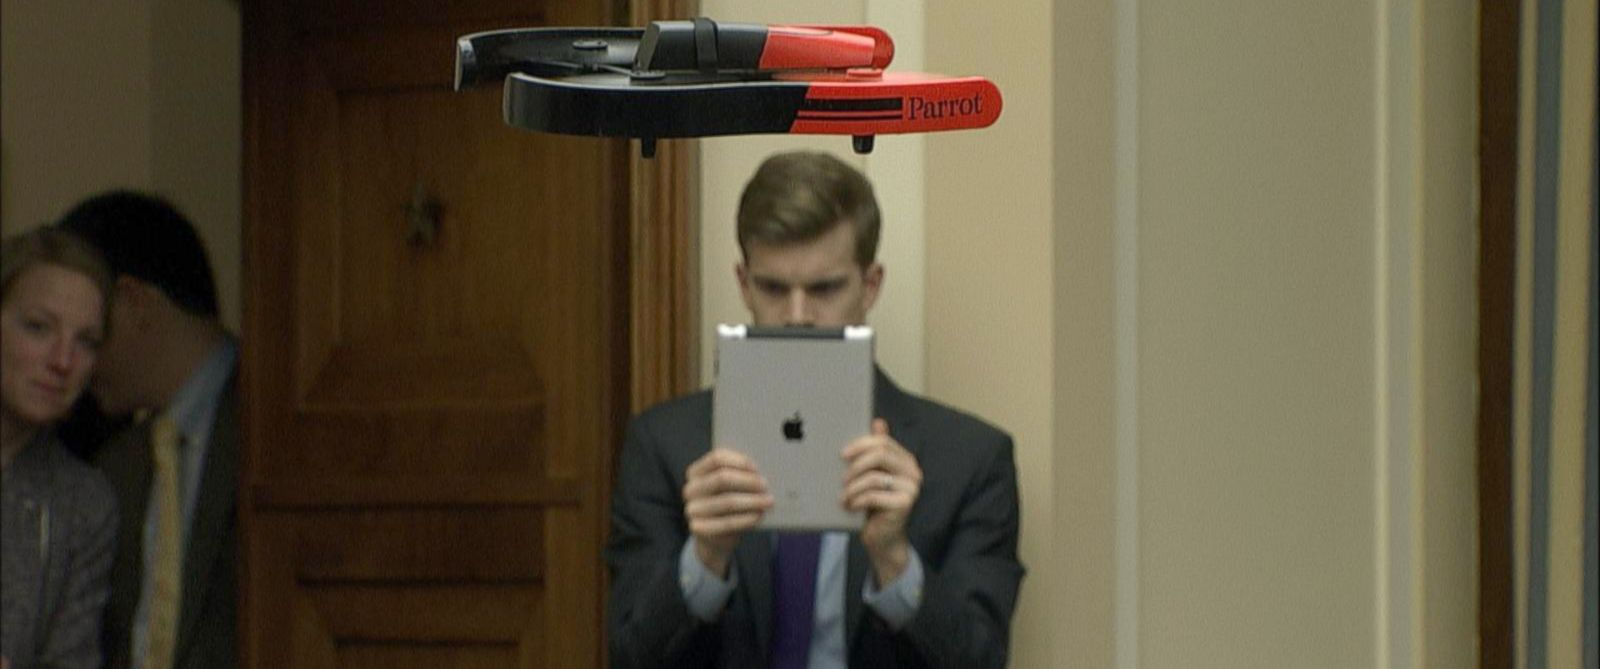 PHOTO: A drone flies overhead at a House Committee on Science, Space and Technology hearing.